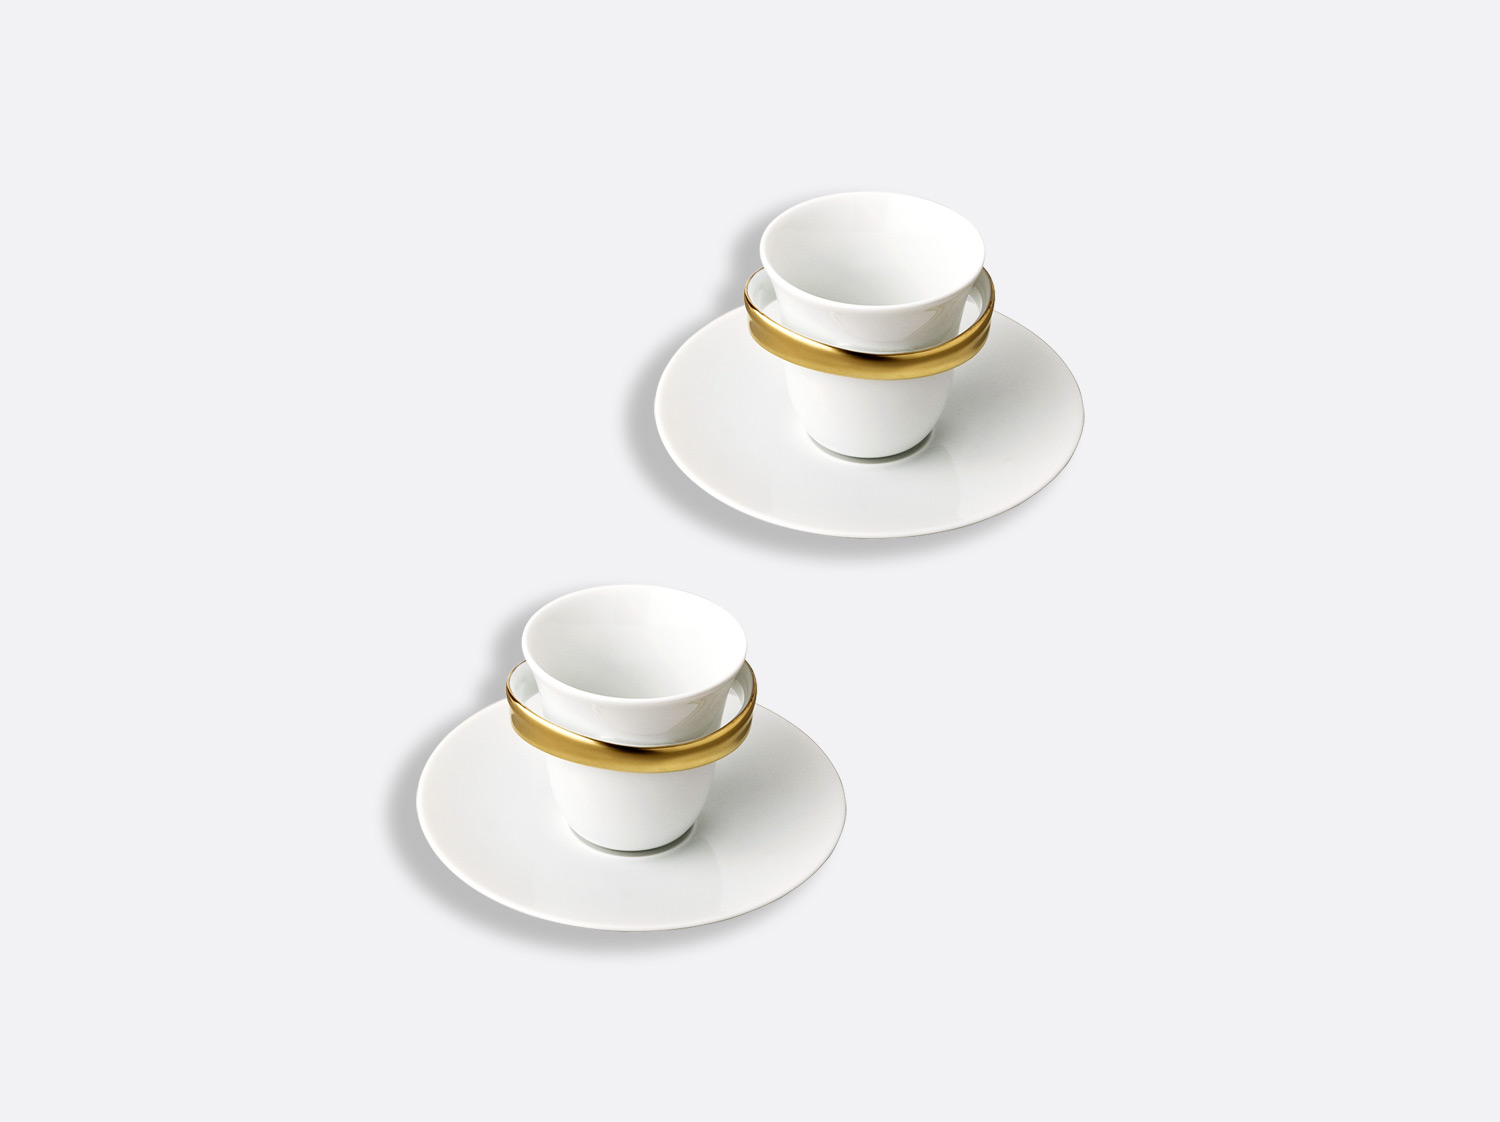 China Espresso cup and saucer - Set of 2 of the collection Anno or | Bernardaud